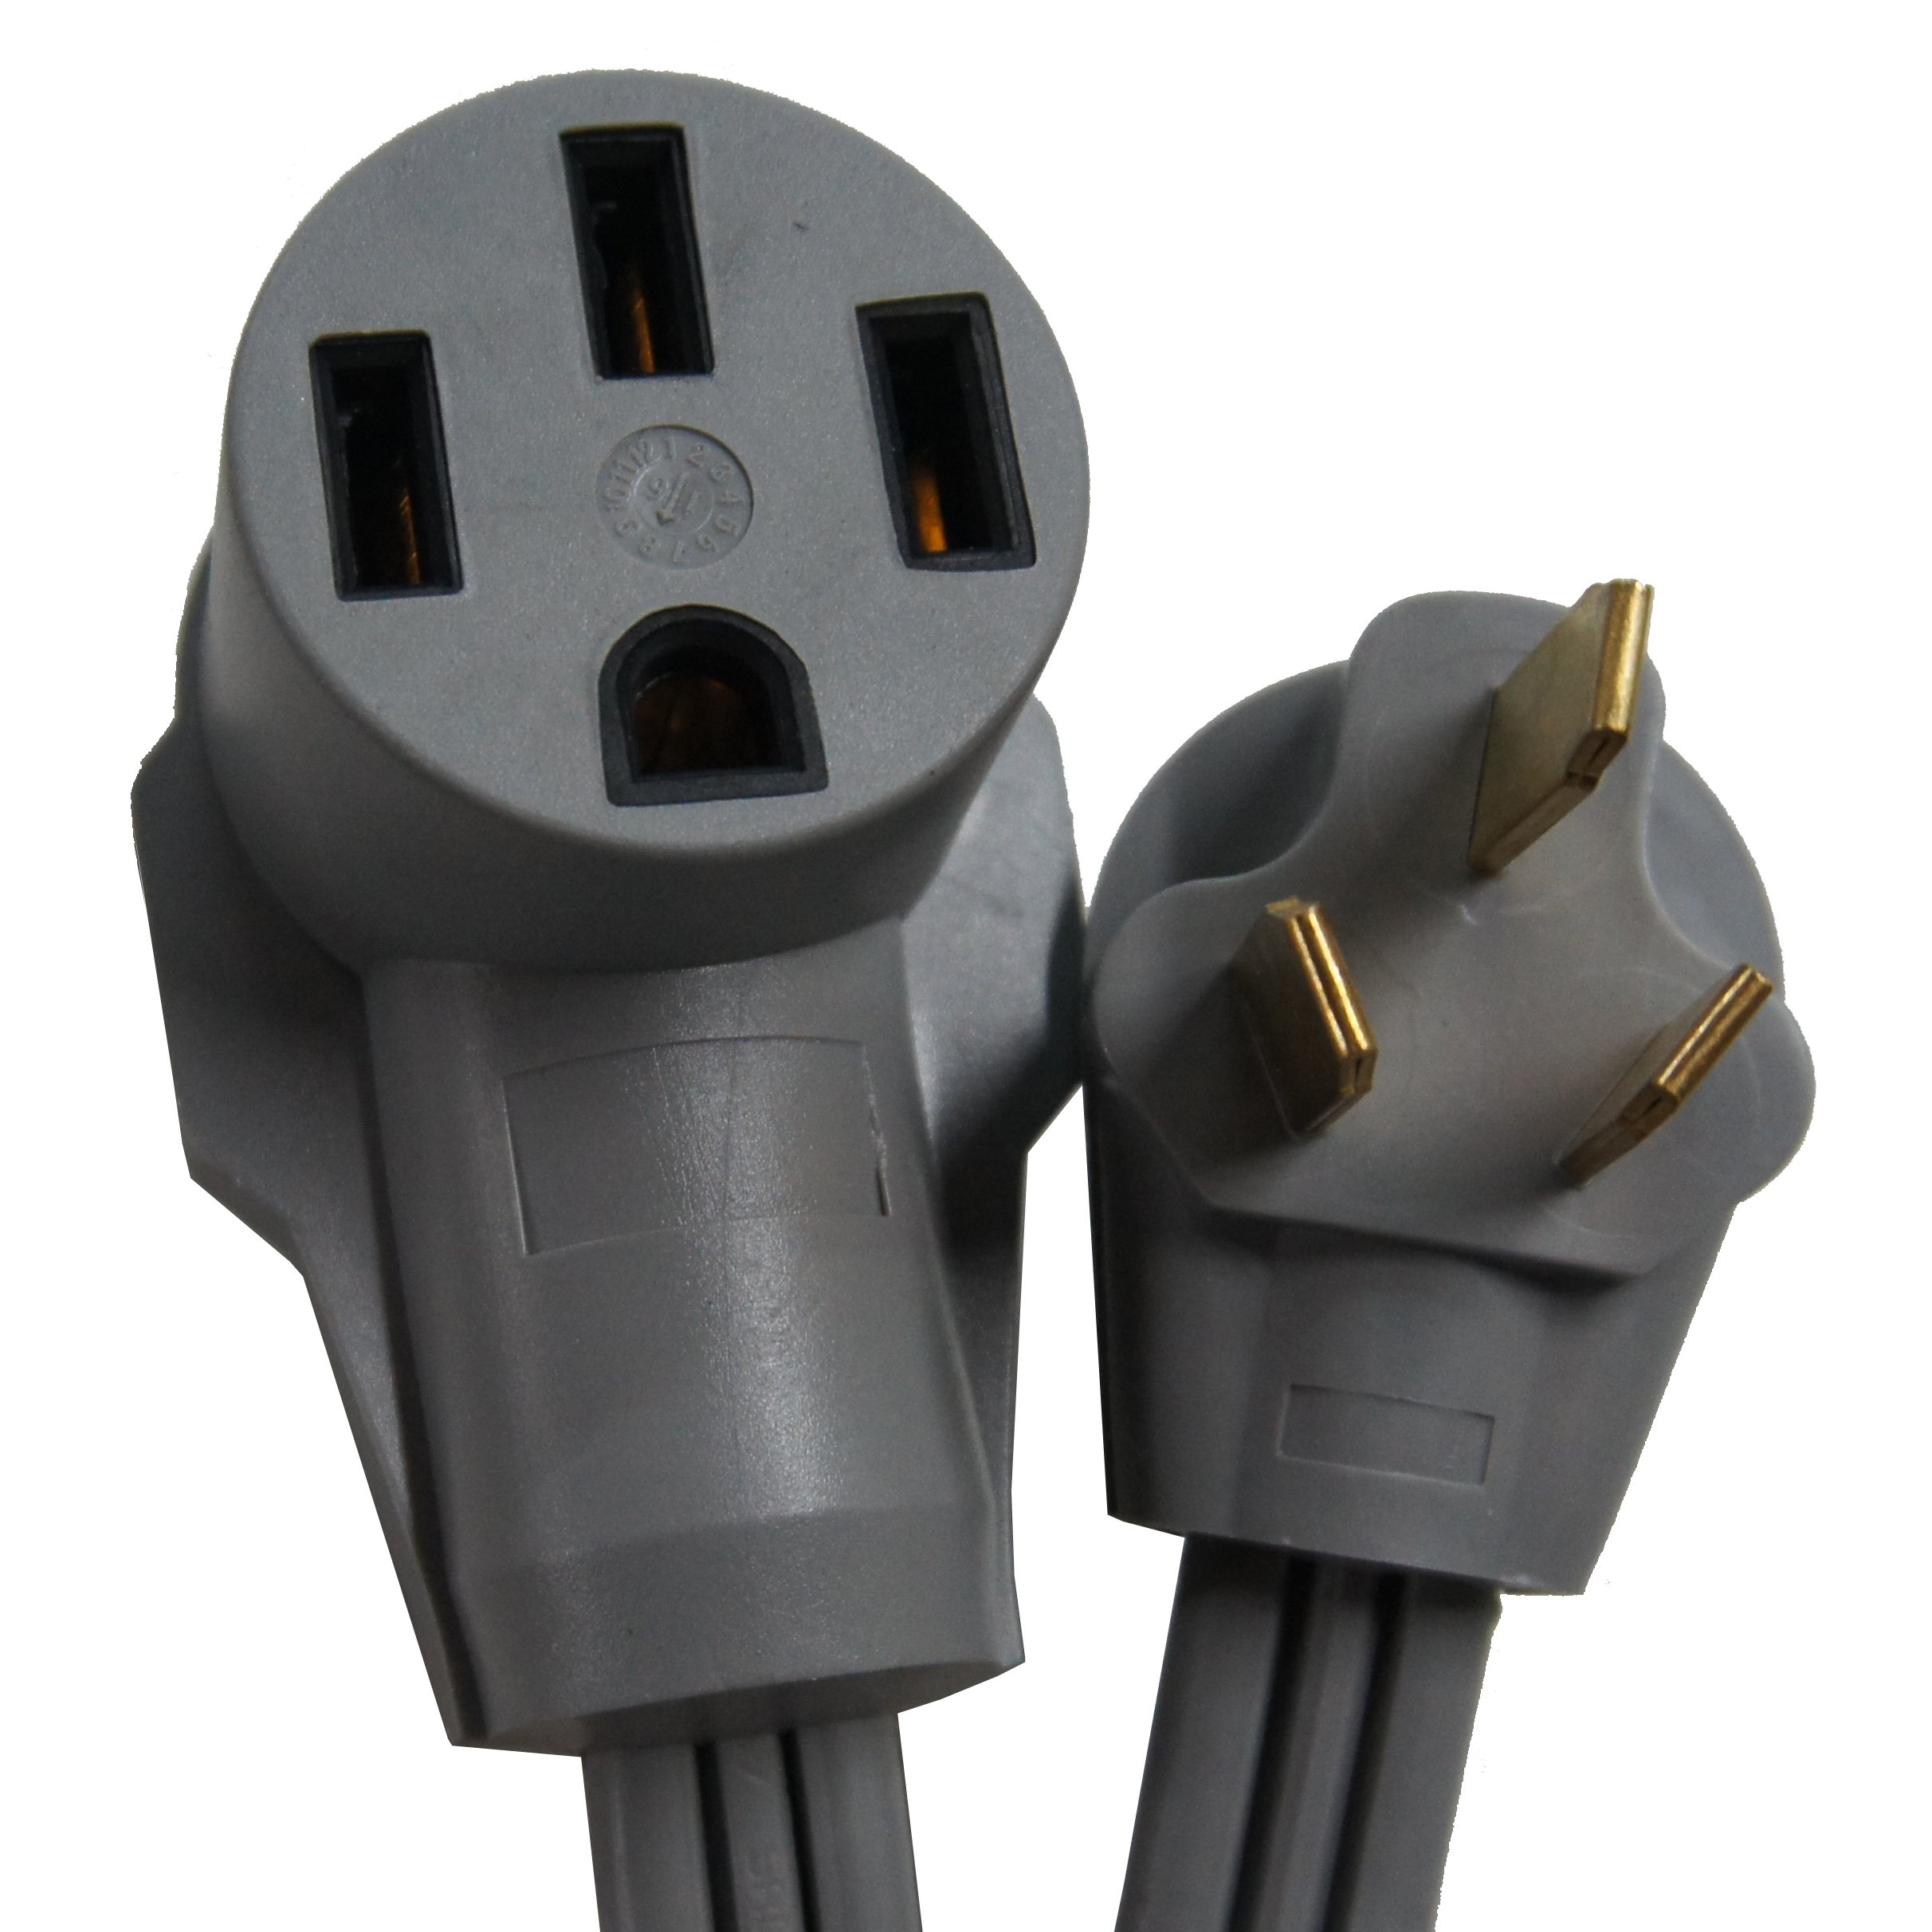 Gomadic Electric Vehicle Big Three 220v Charger Adapter Kit Includes NEMA 14-50R to NEMA 10-30P L14-30P and 10-50P - Charging Options to Your Tesla EV Car by Gomadic (Image #3)